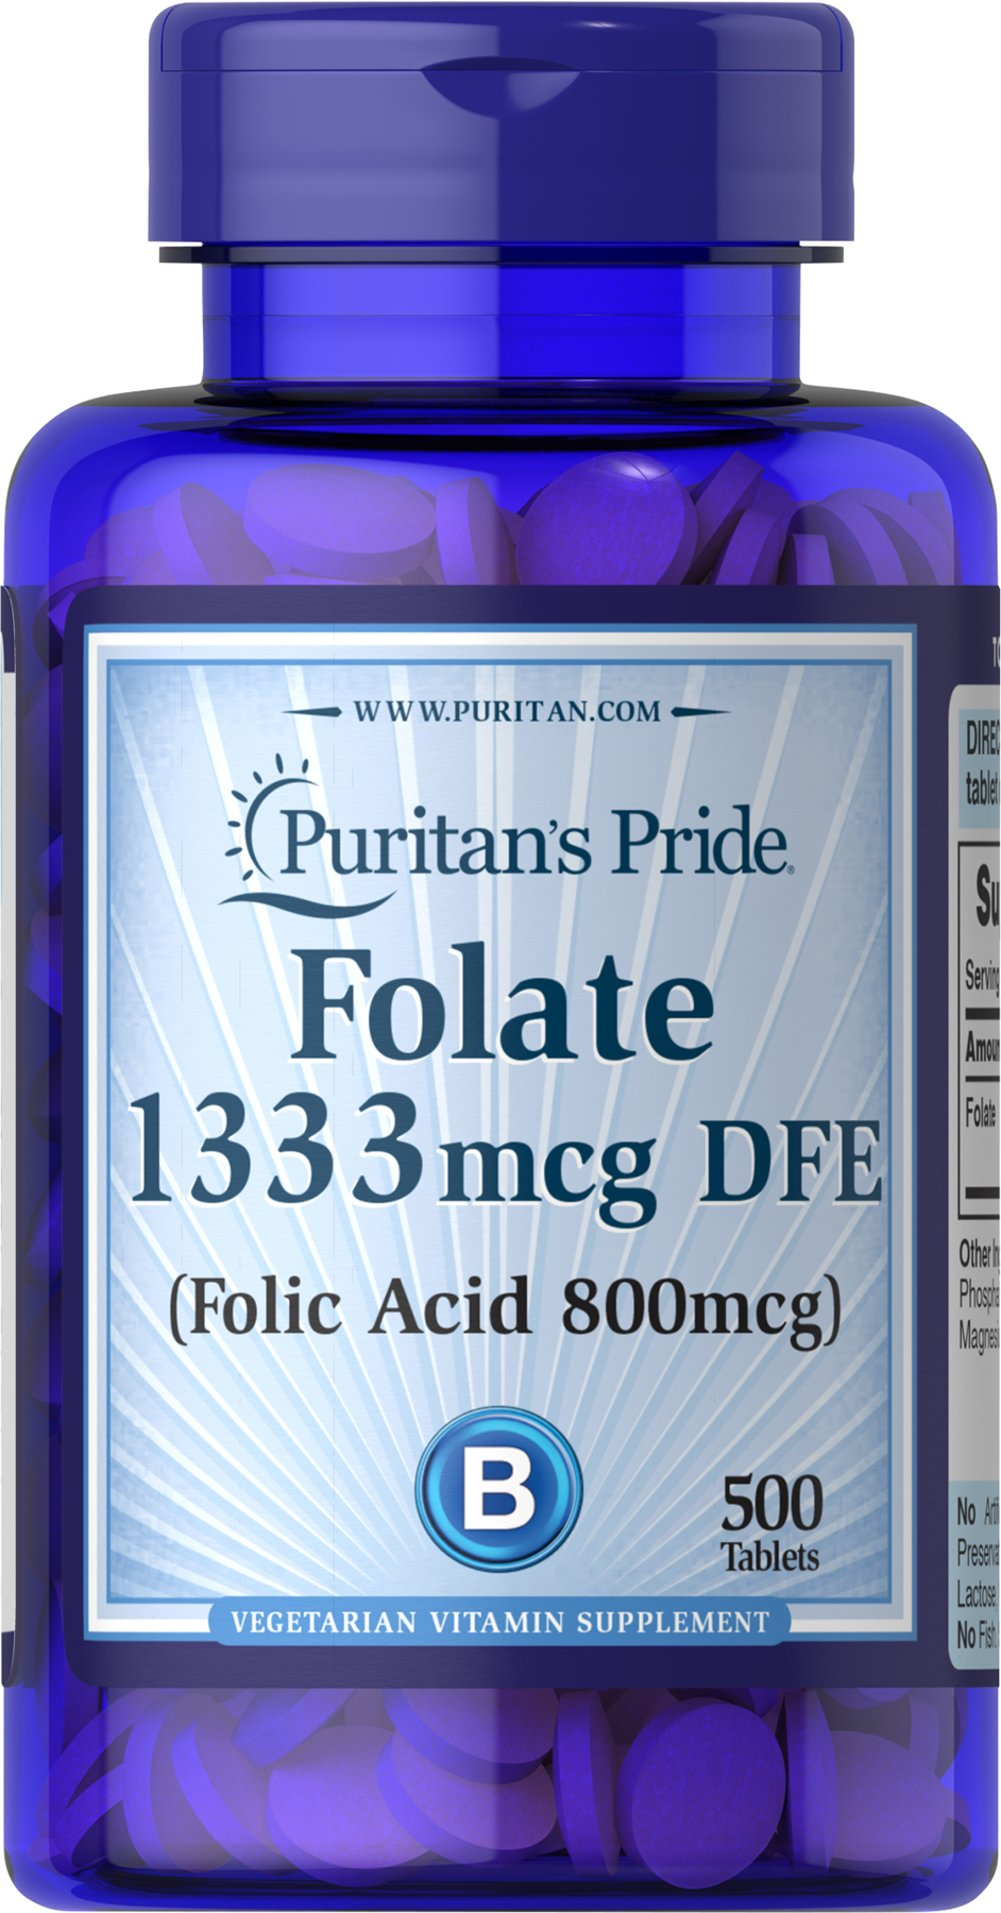 Folic Acid 800 mcg <p>It's well known that Folic Acid is important for pregnant women, but did you also know that this essential B Vitamin also supports cardiovascular health in women and men?** Folic Acid is part of a triad of B Vitamins - along with Vitamins B-6 and B-12 - that helps promote heart health.**</p> 500 Tablets 800 mcg $8.99